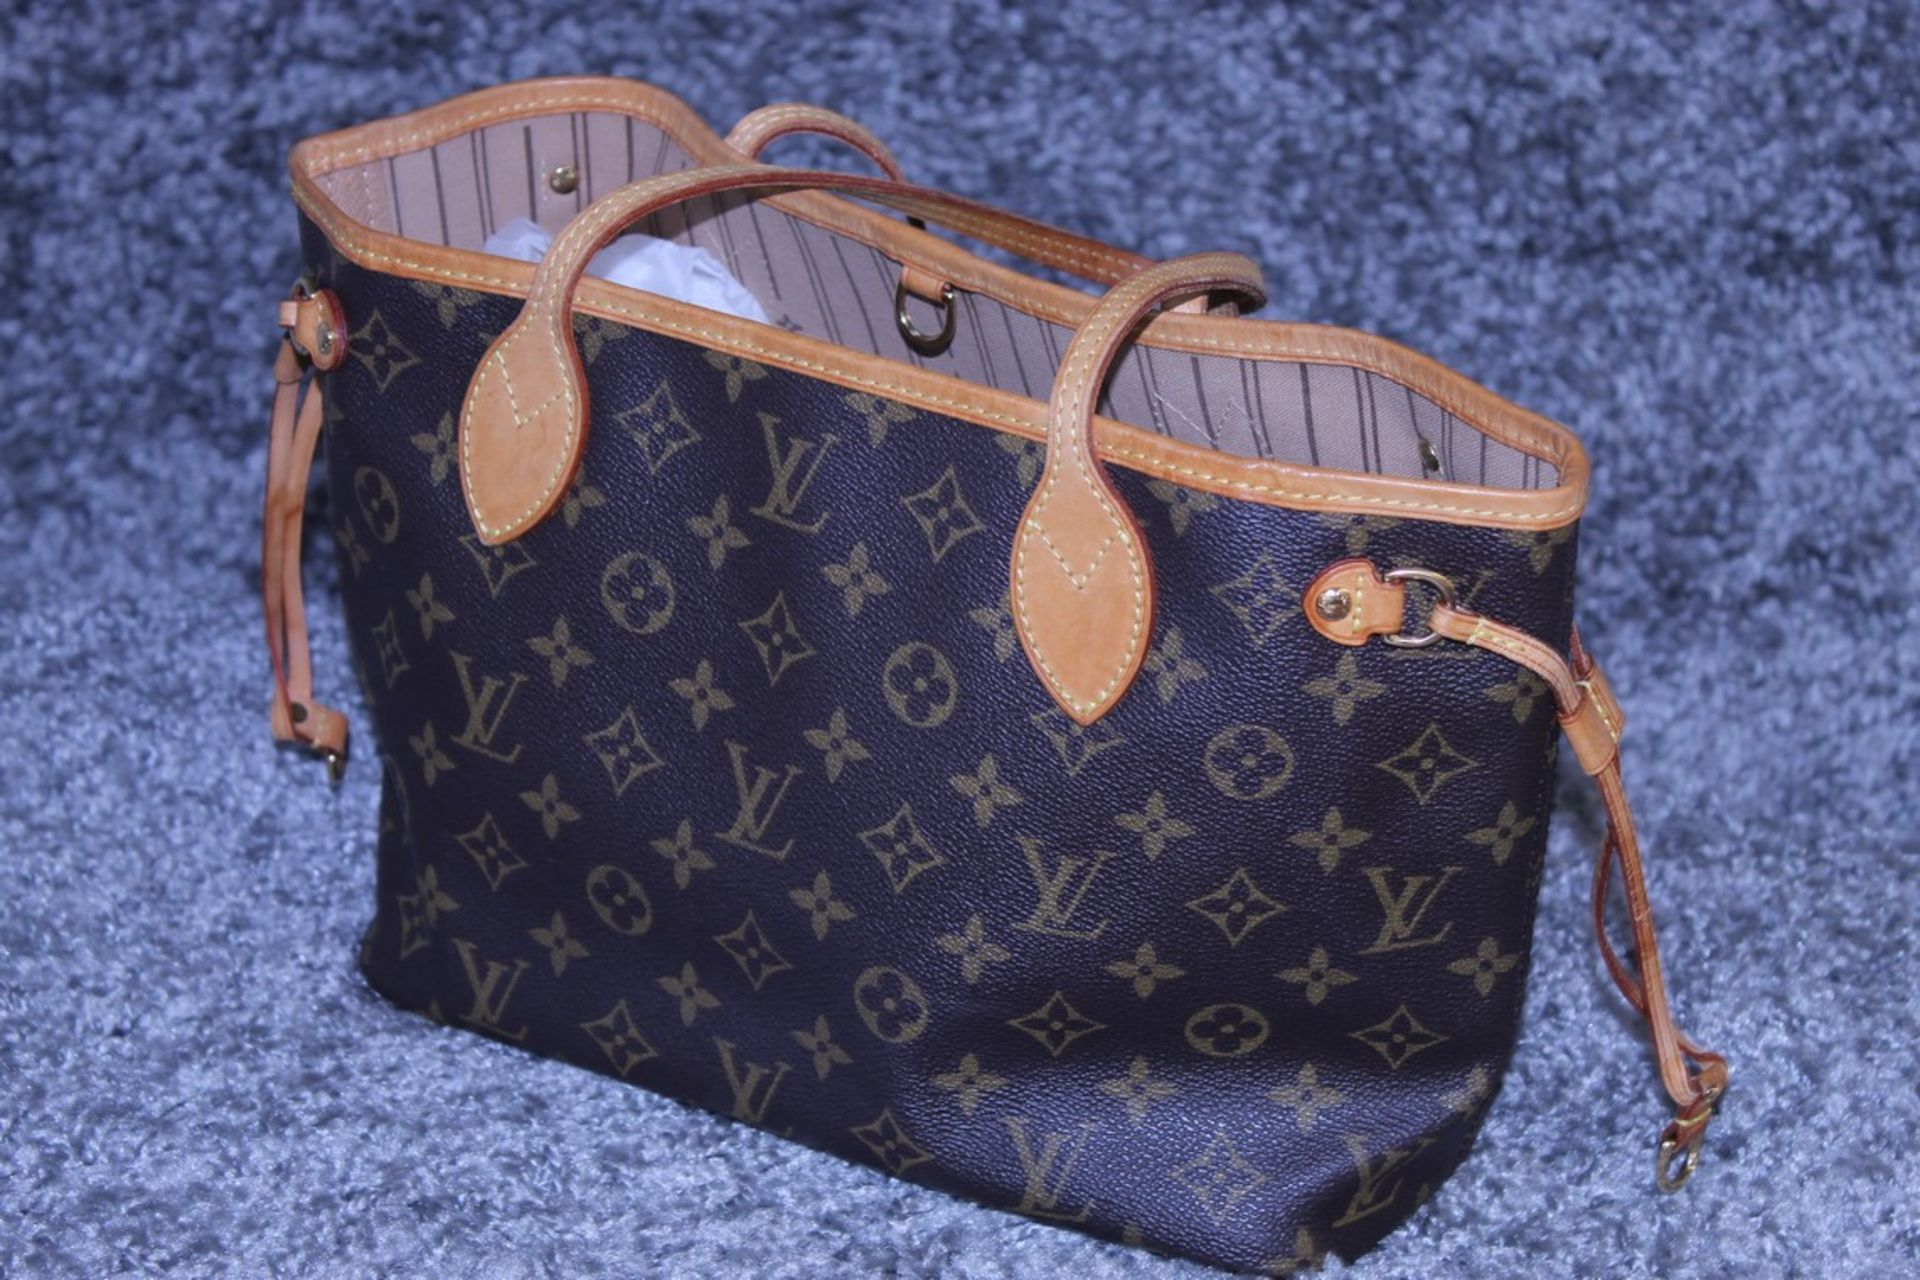 RRP £1500 Louis Vuitton Neverfull Handbag In Brown Coated Monogram Canvas With Vachetta Handle ( - Image 3 of 6